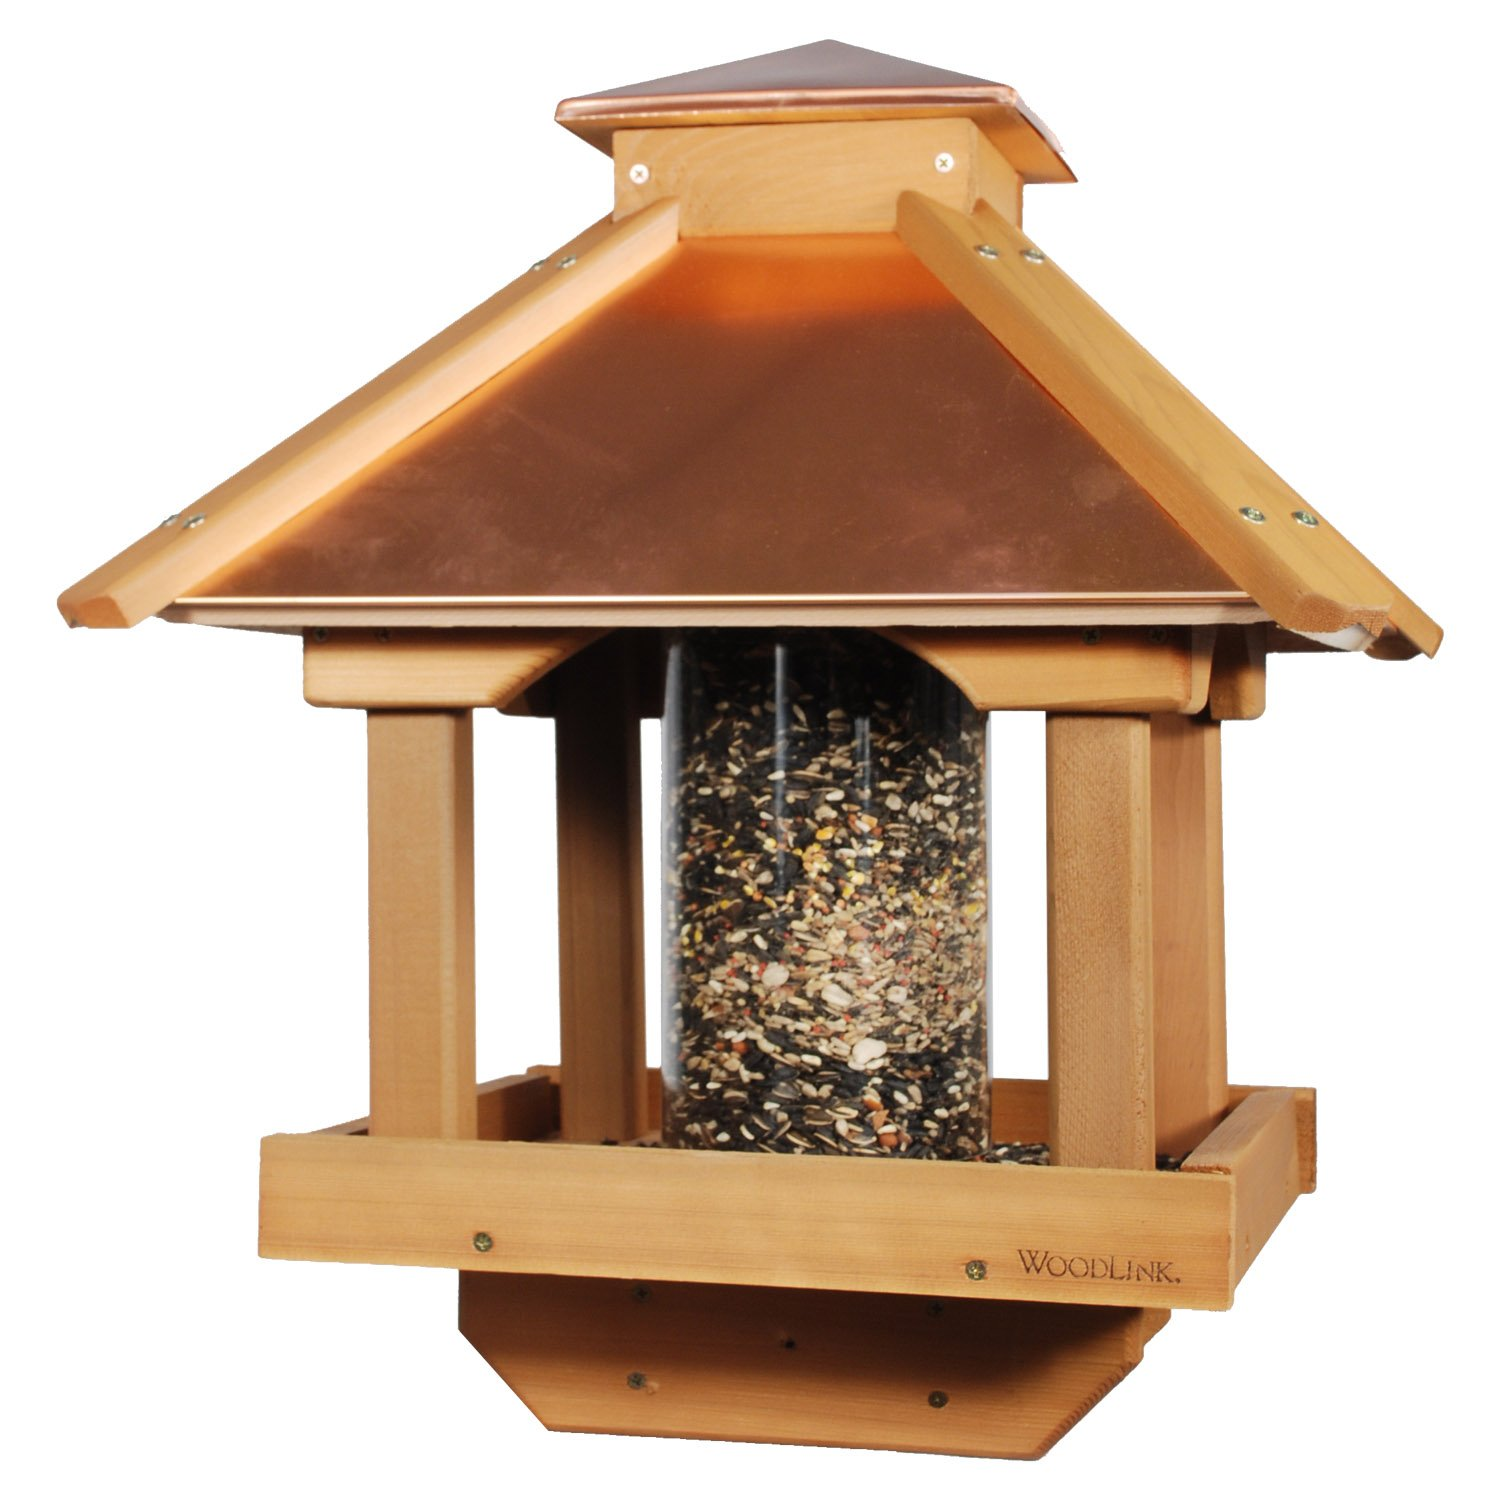 Woodlink COPGAZEBO Coppertop Wood Gazebo Bird Feeder